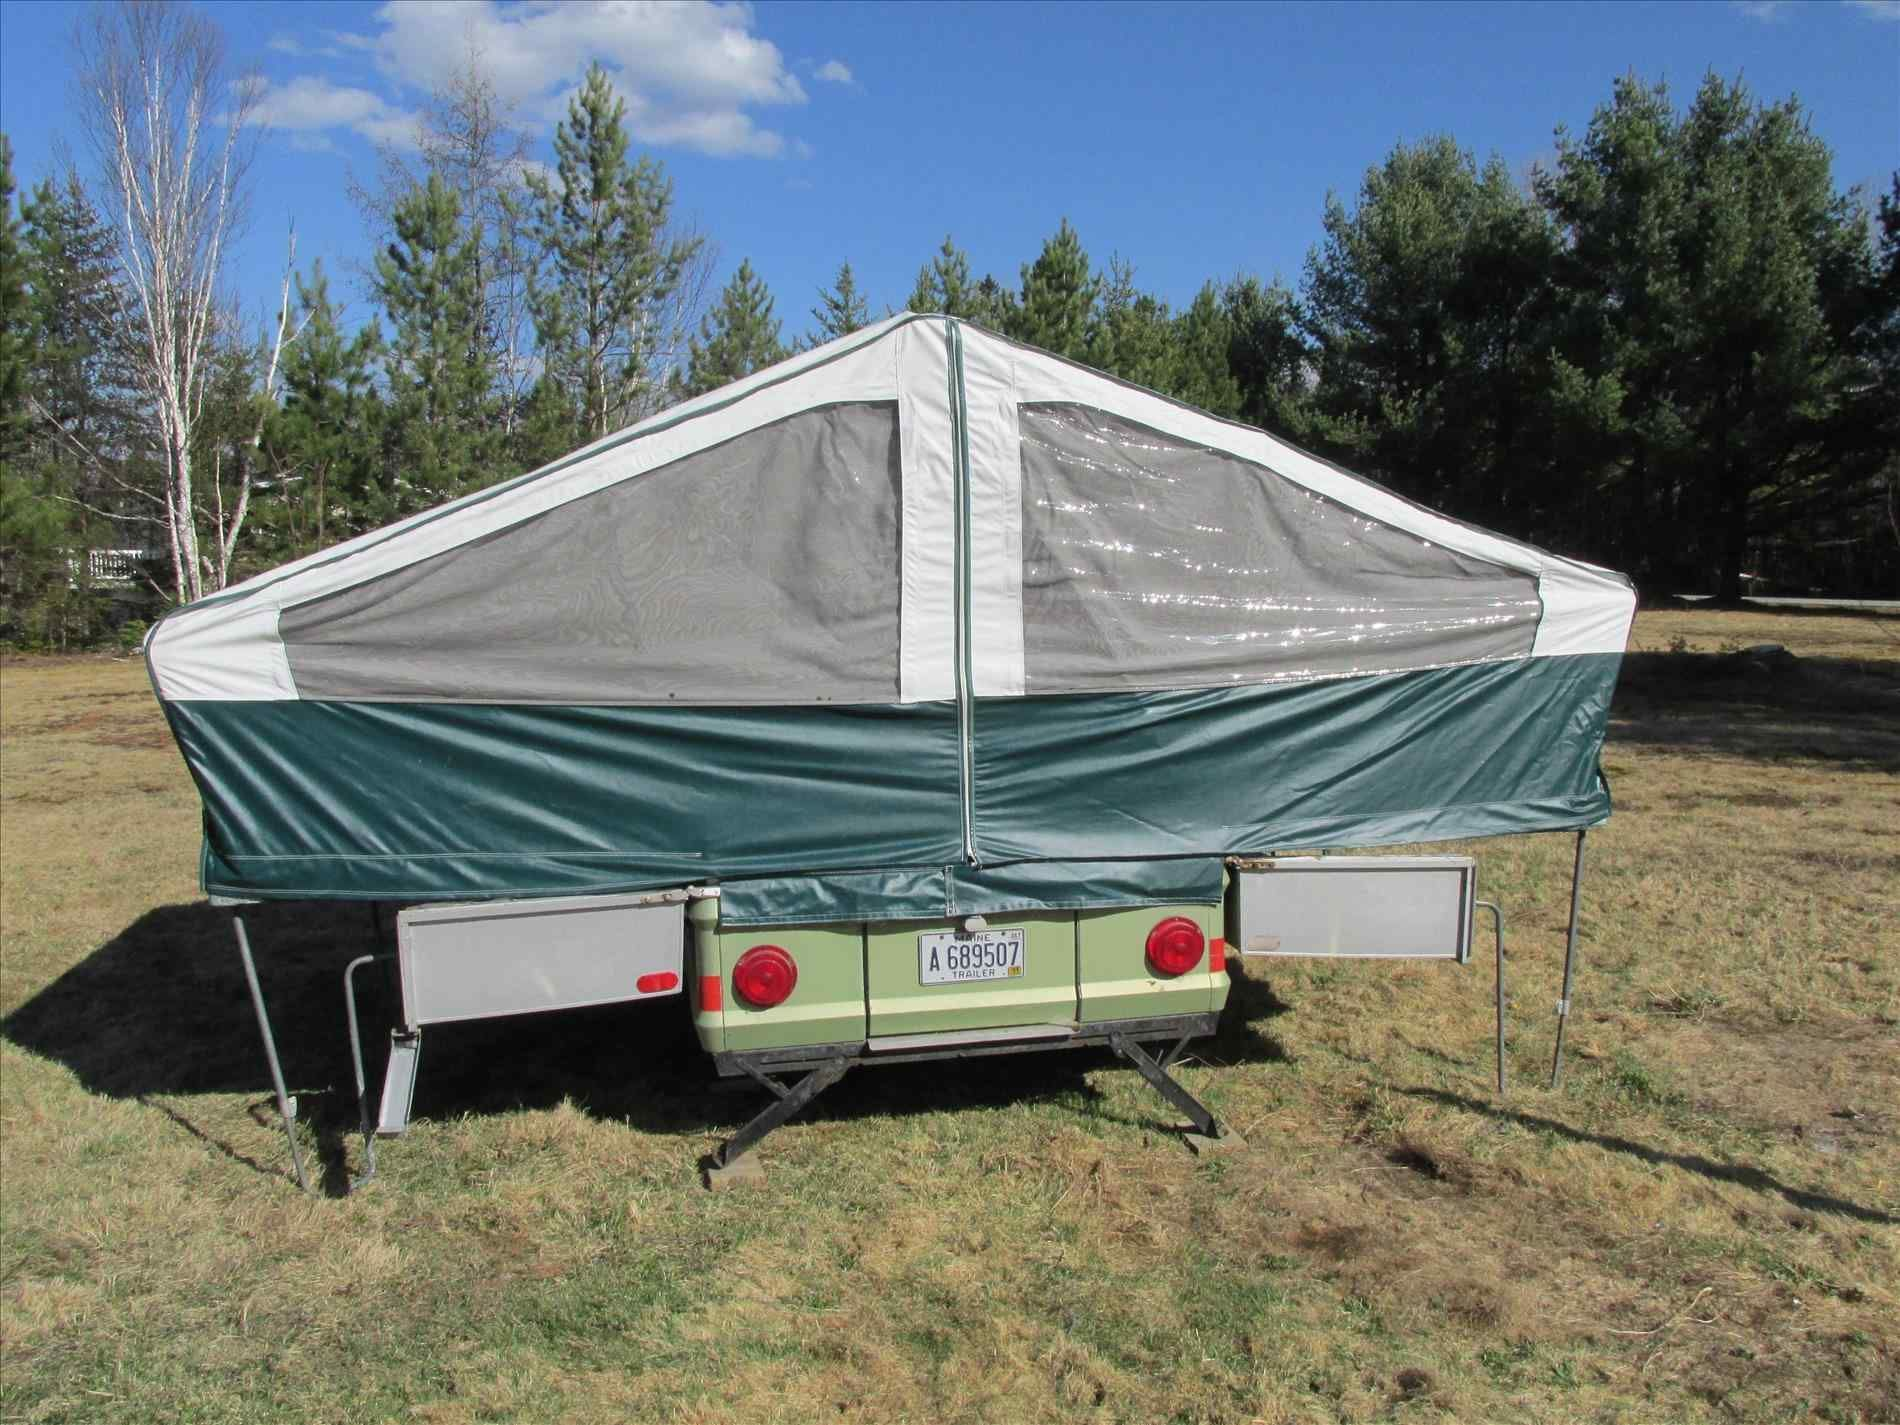 25 Awesome Small Pop Up Camper Trailer Ideas for ...